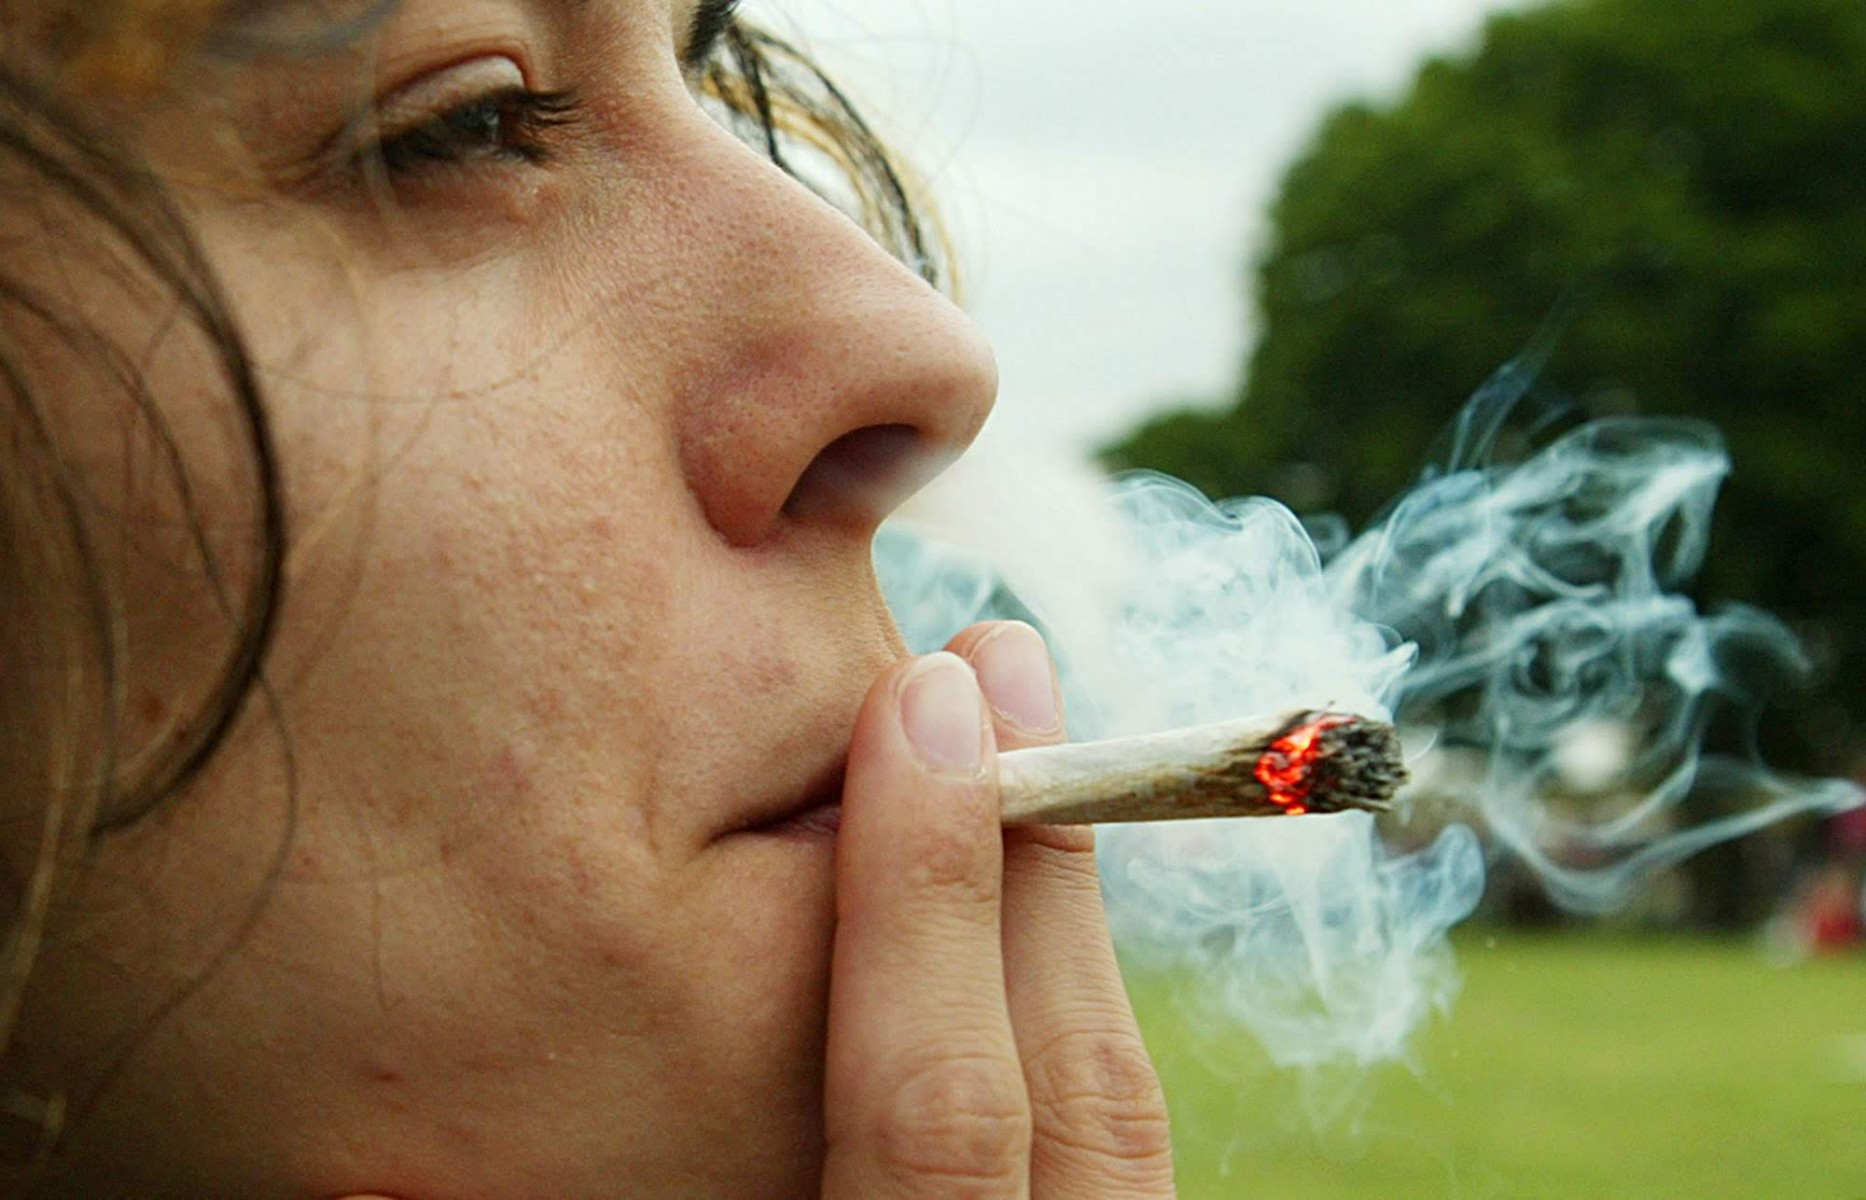 Marijuana Use May Not Make Parents More 'Chill'